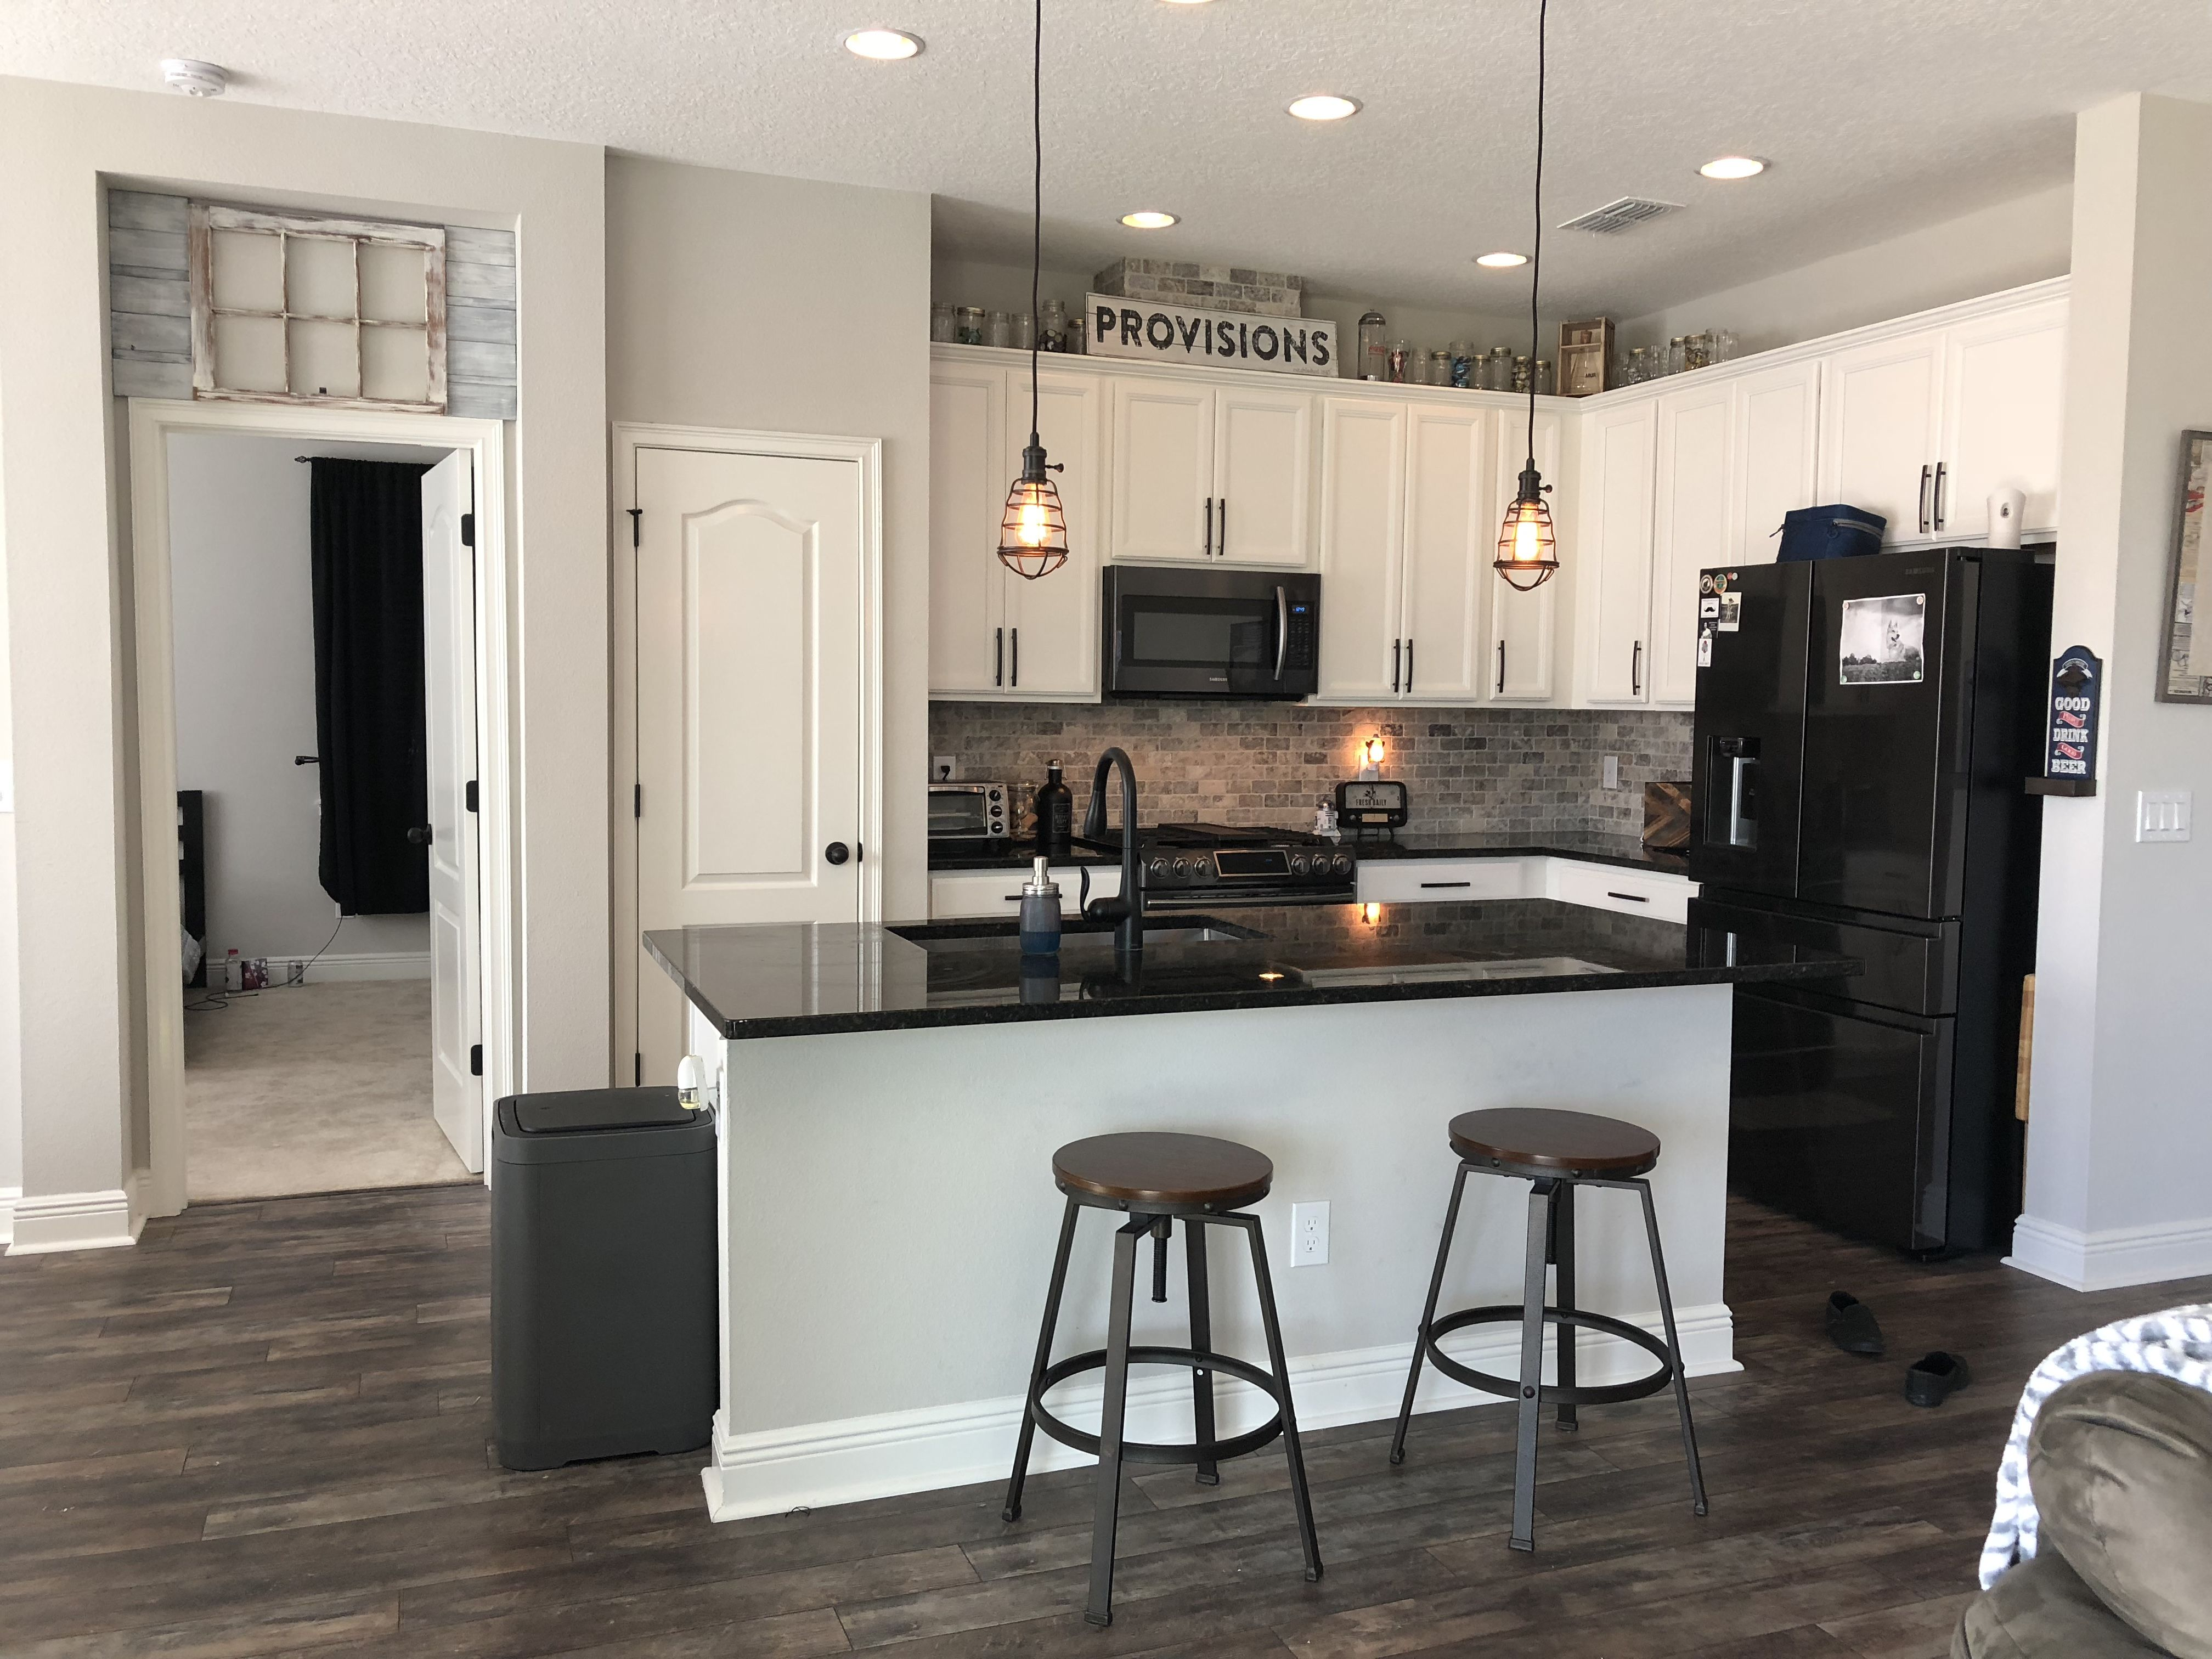 Industrial Style Farmhouse Kitchen With Black Granite Counter Tops And White Cabinet Black Appliances Kitchen White Cabinets Black Appliances Black Countertops